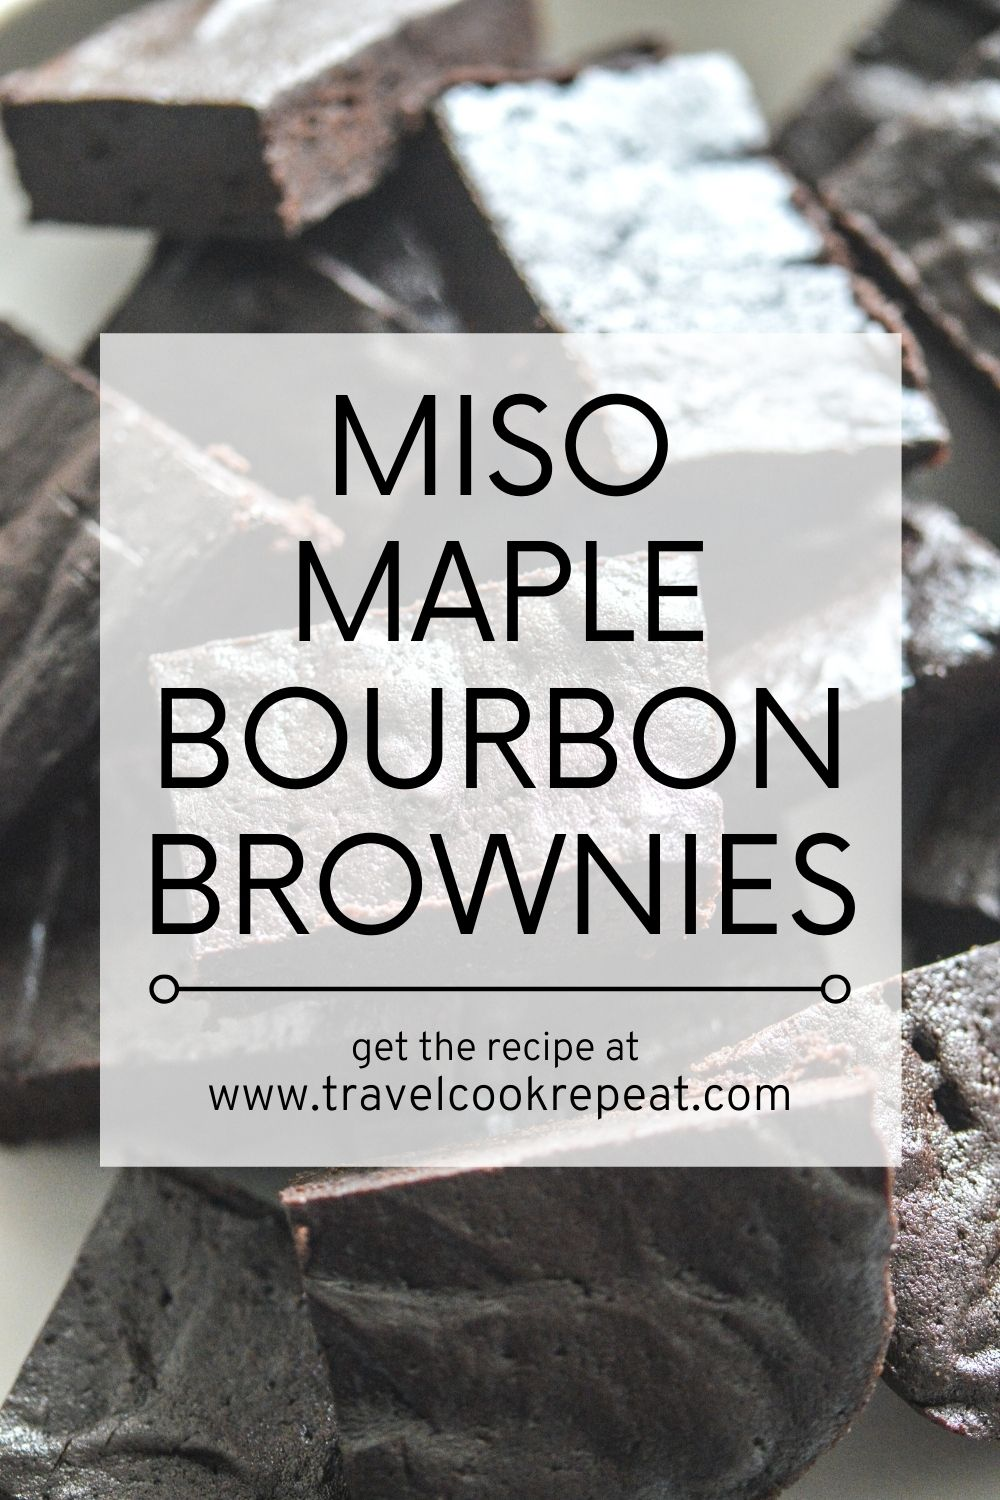 Bourbon Maple Brownies (with Miso)